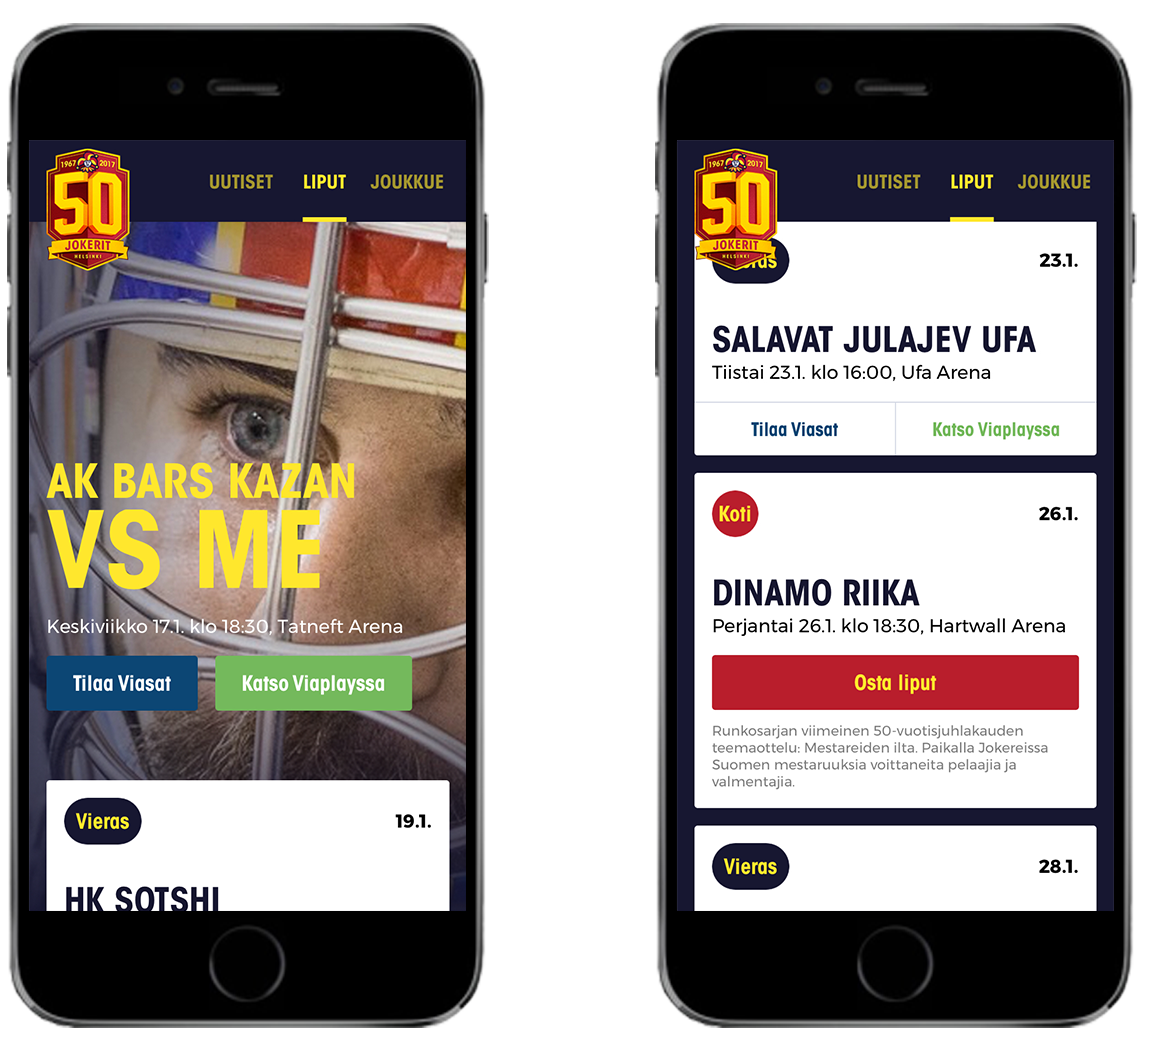 Two images of mobile phone with Jokerit app screens